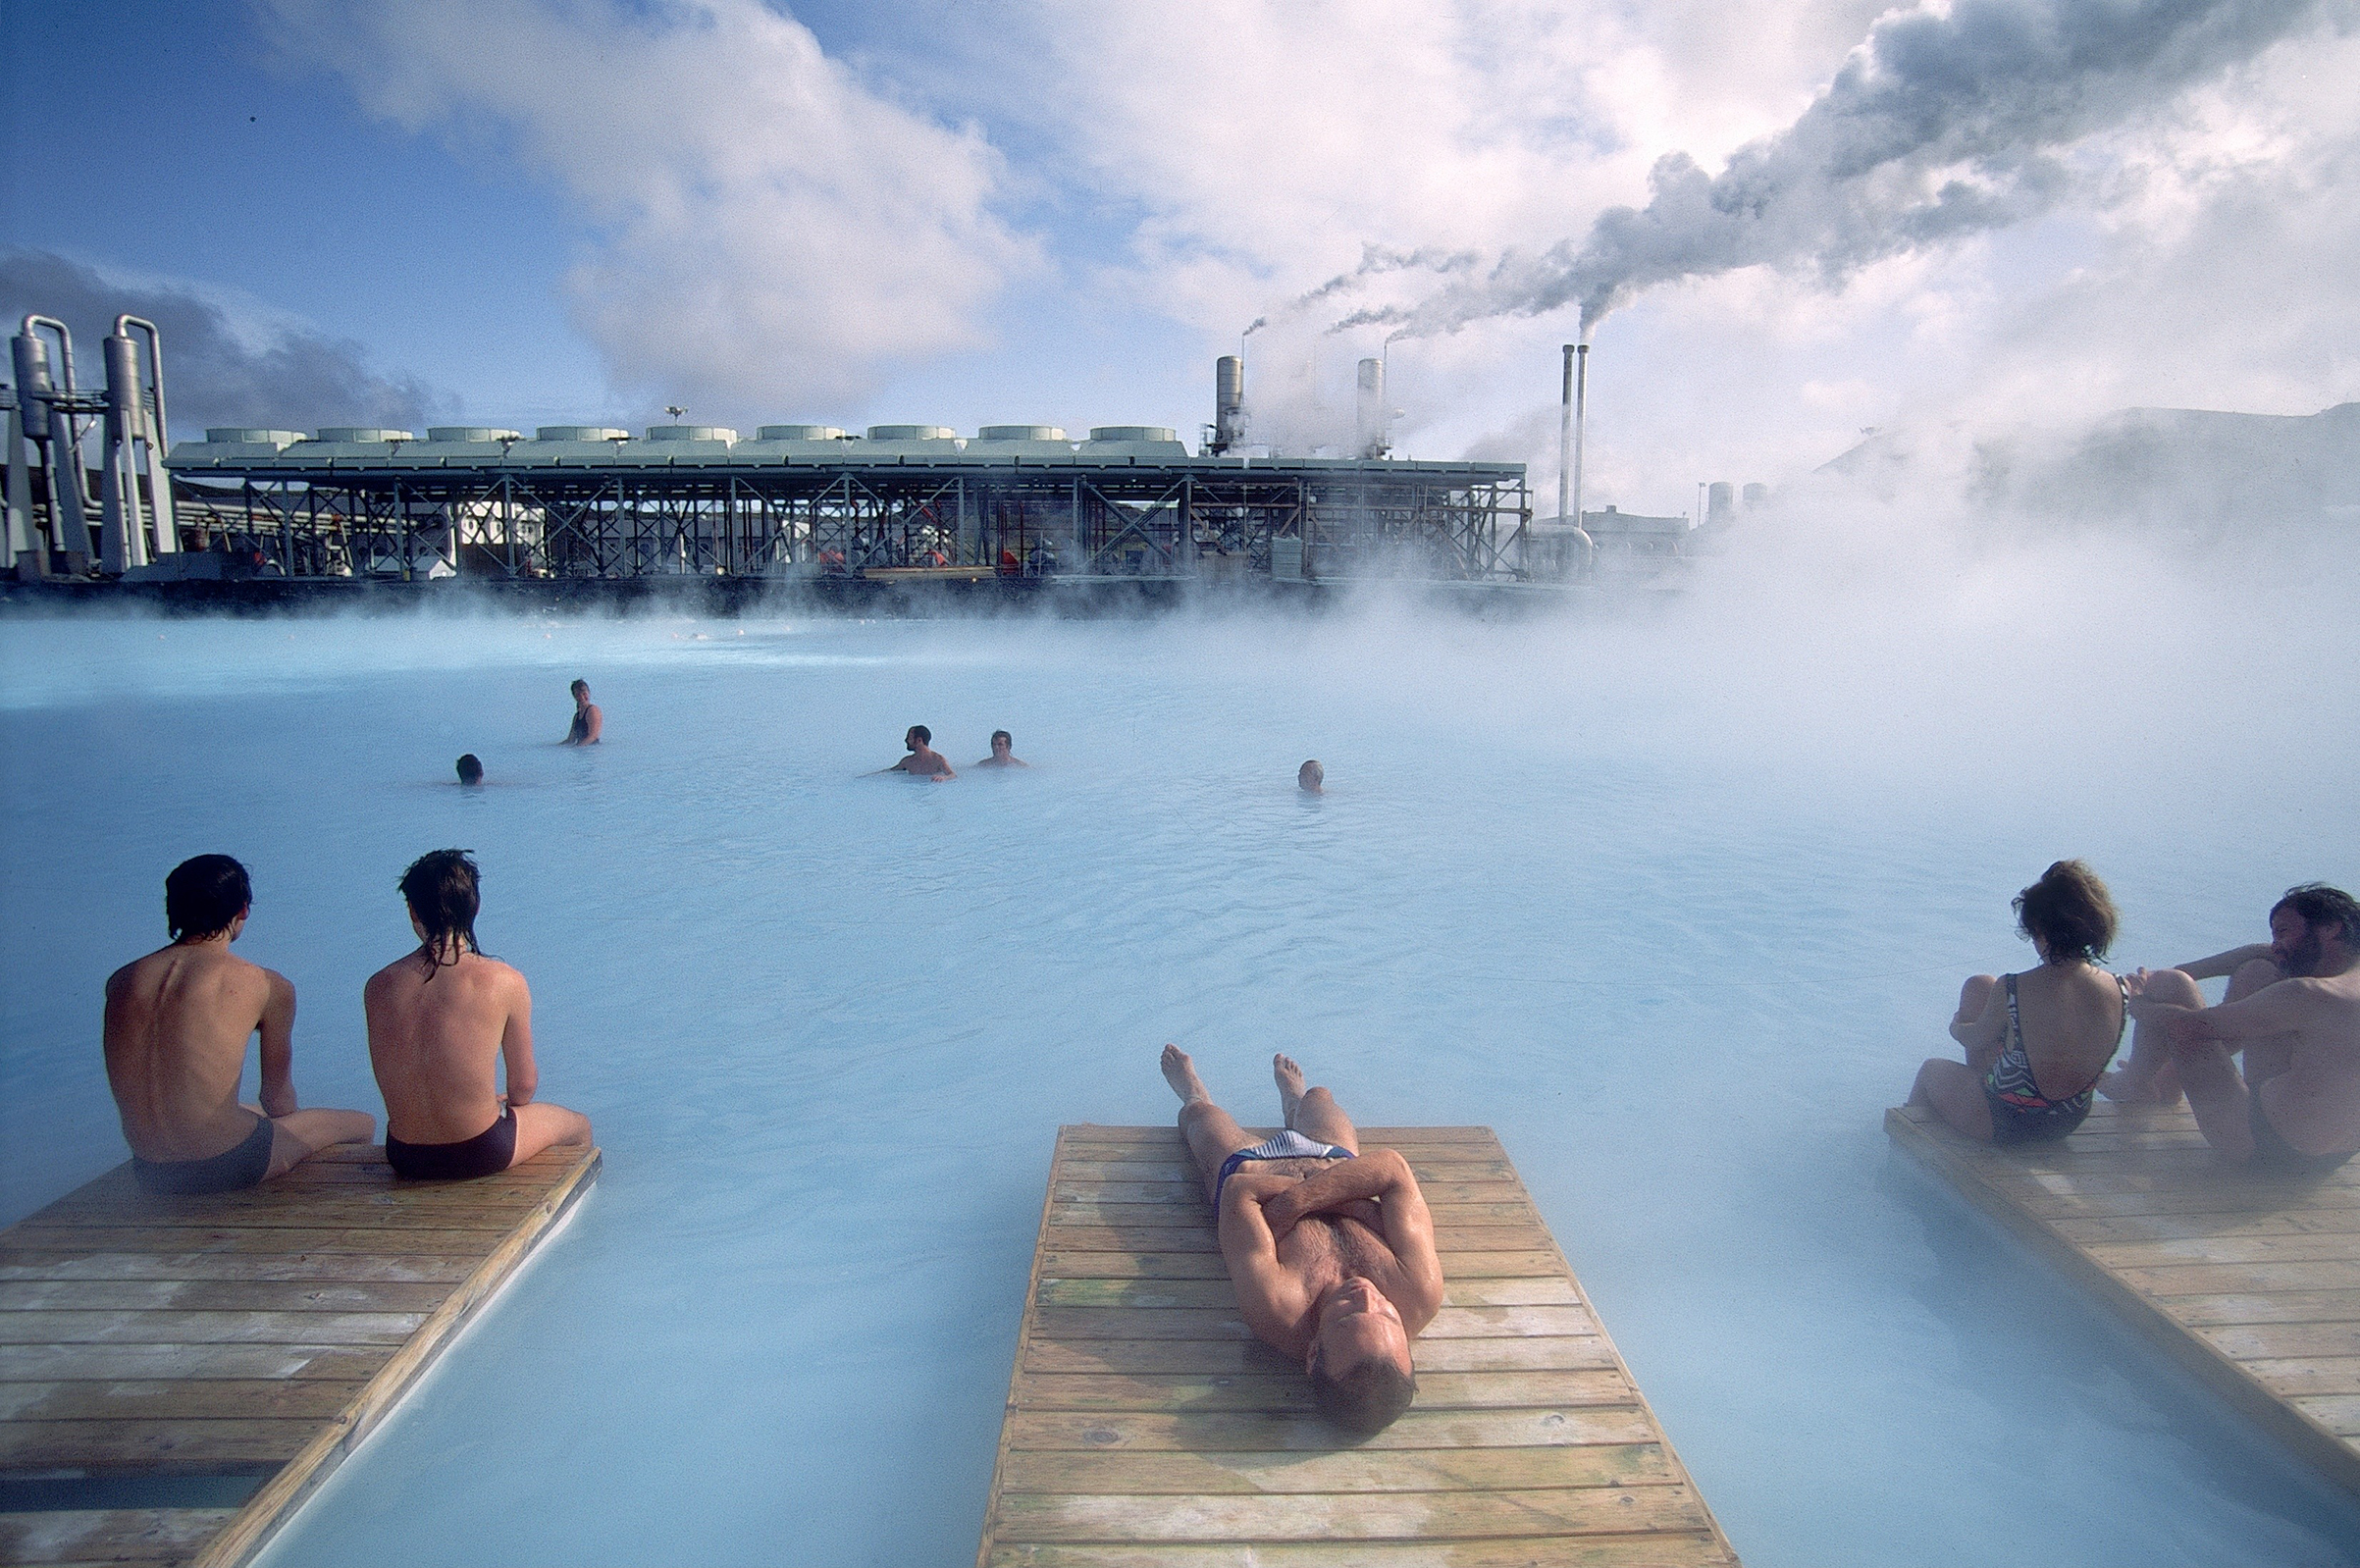 Bathers at the Blue Lagoon thermal bath in Reykjanes, Iceland.